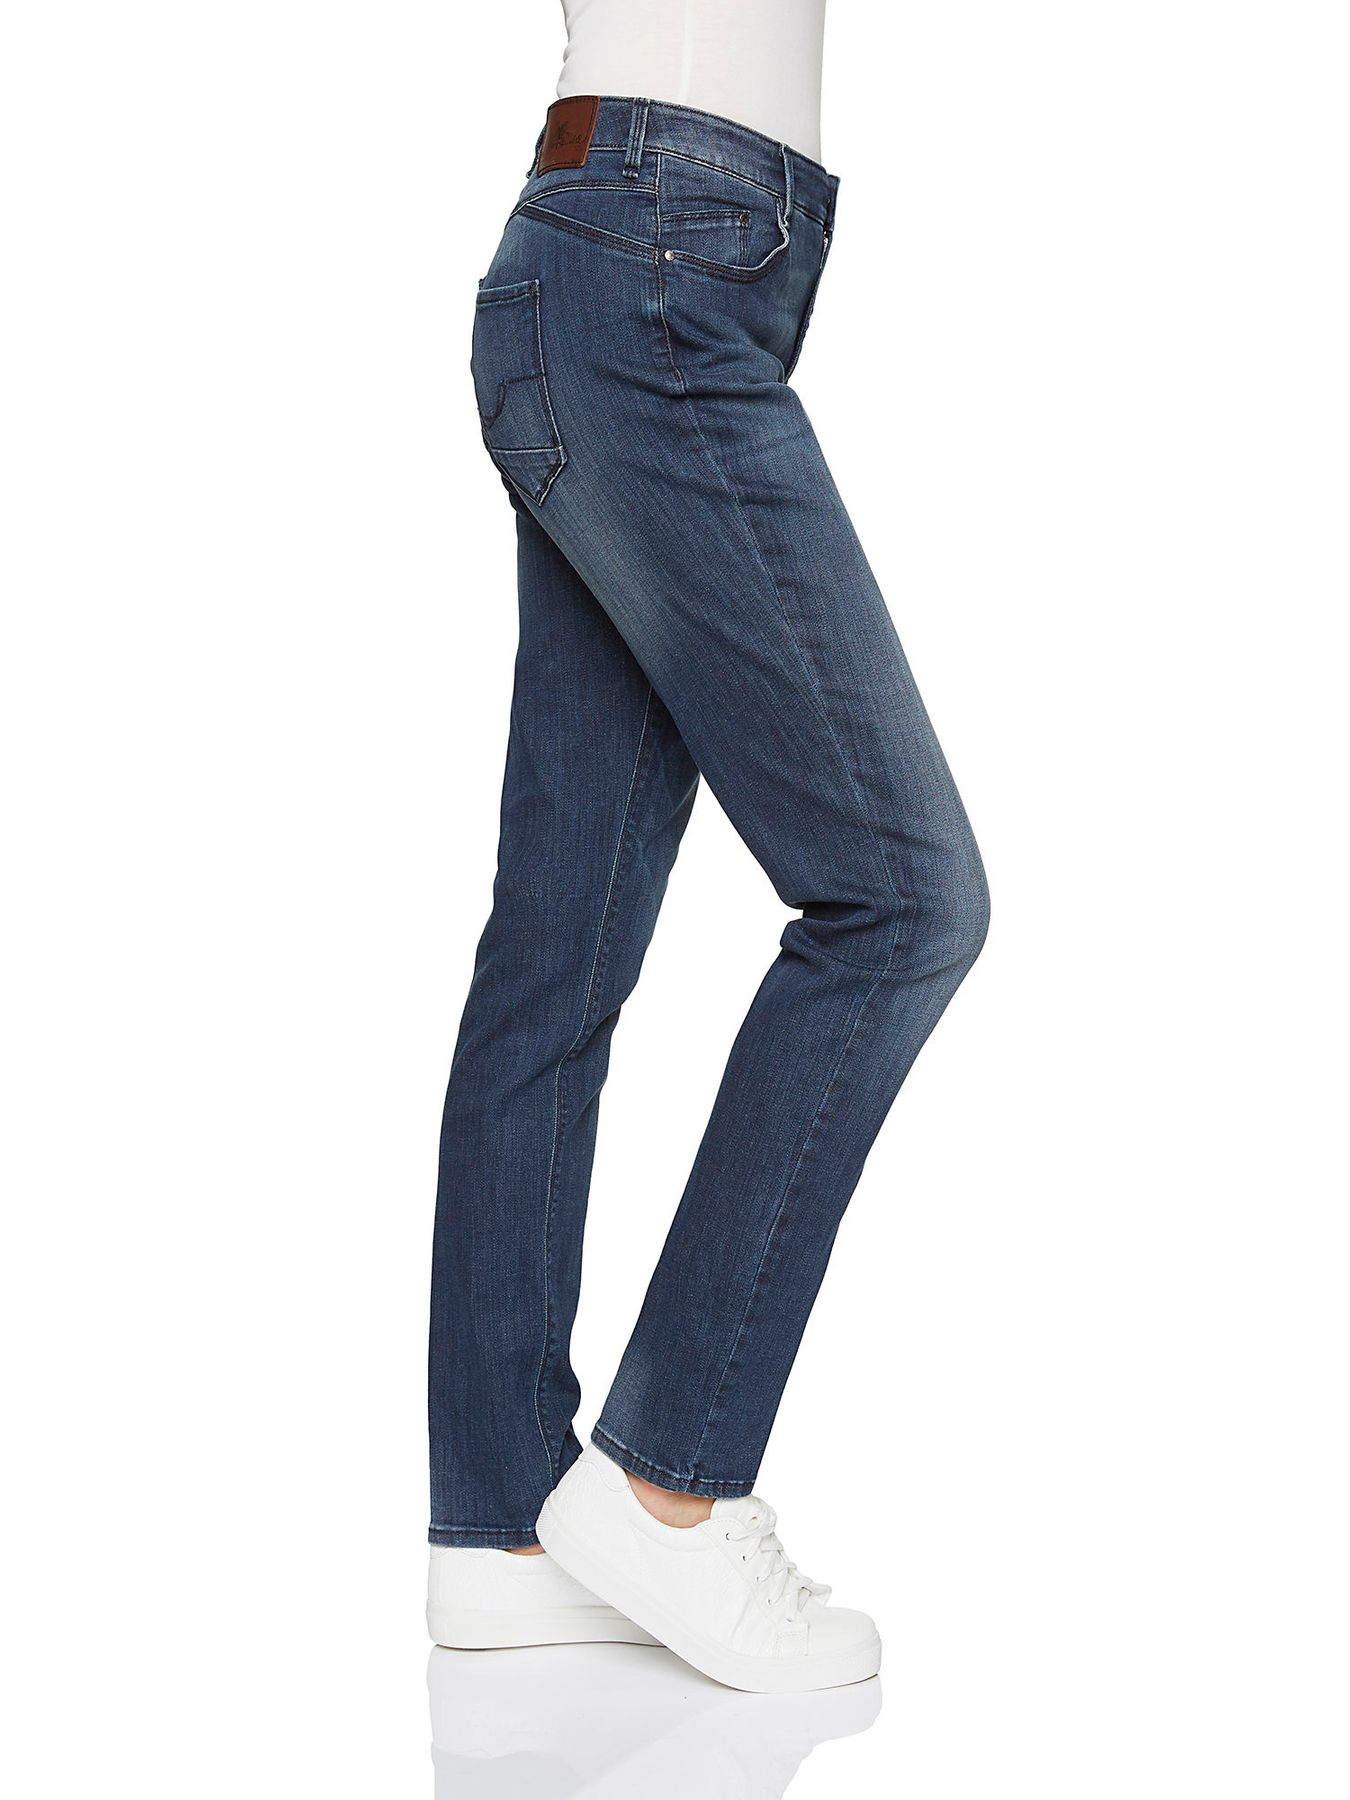 Atelier Gardeur - Slim Fit - Damen 5-Pocket Jeans aus Baumwollstretch Ciara (670131) – Bild 2